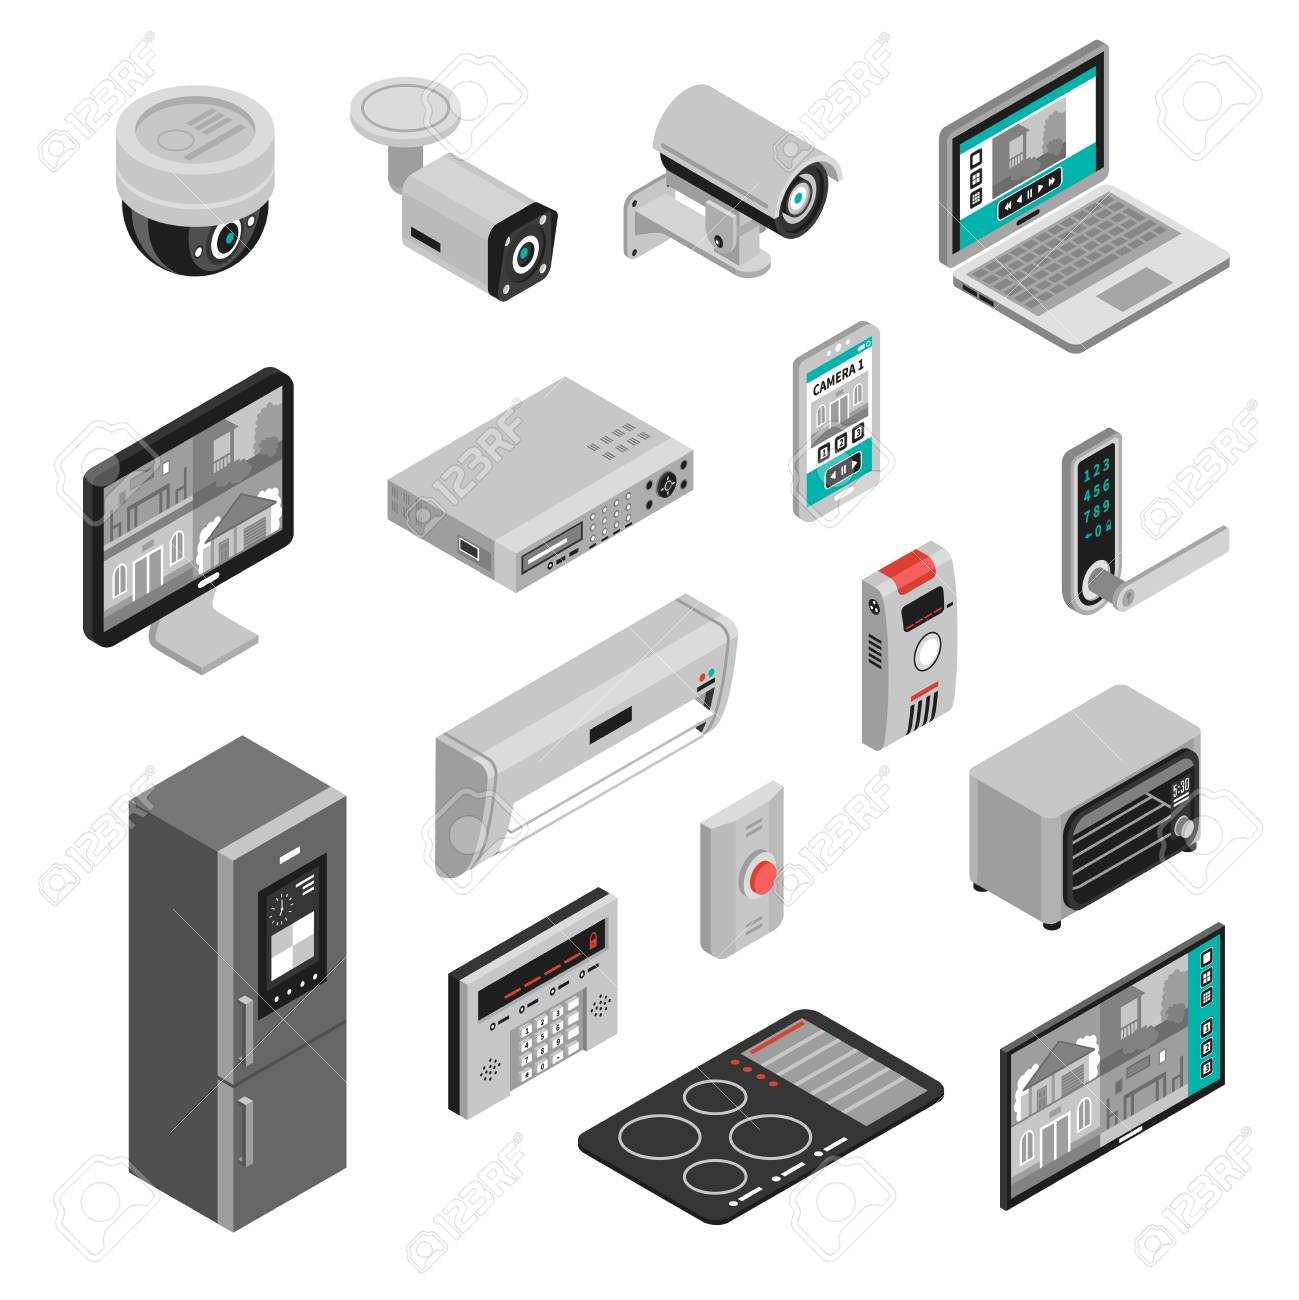 Isometric set of smart home kitchen and house appliances isolated on white background 3d vector illustration - 88554990